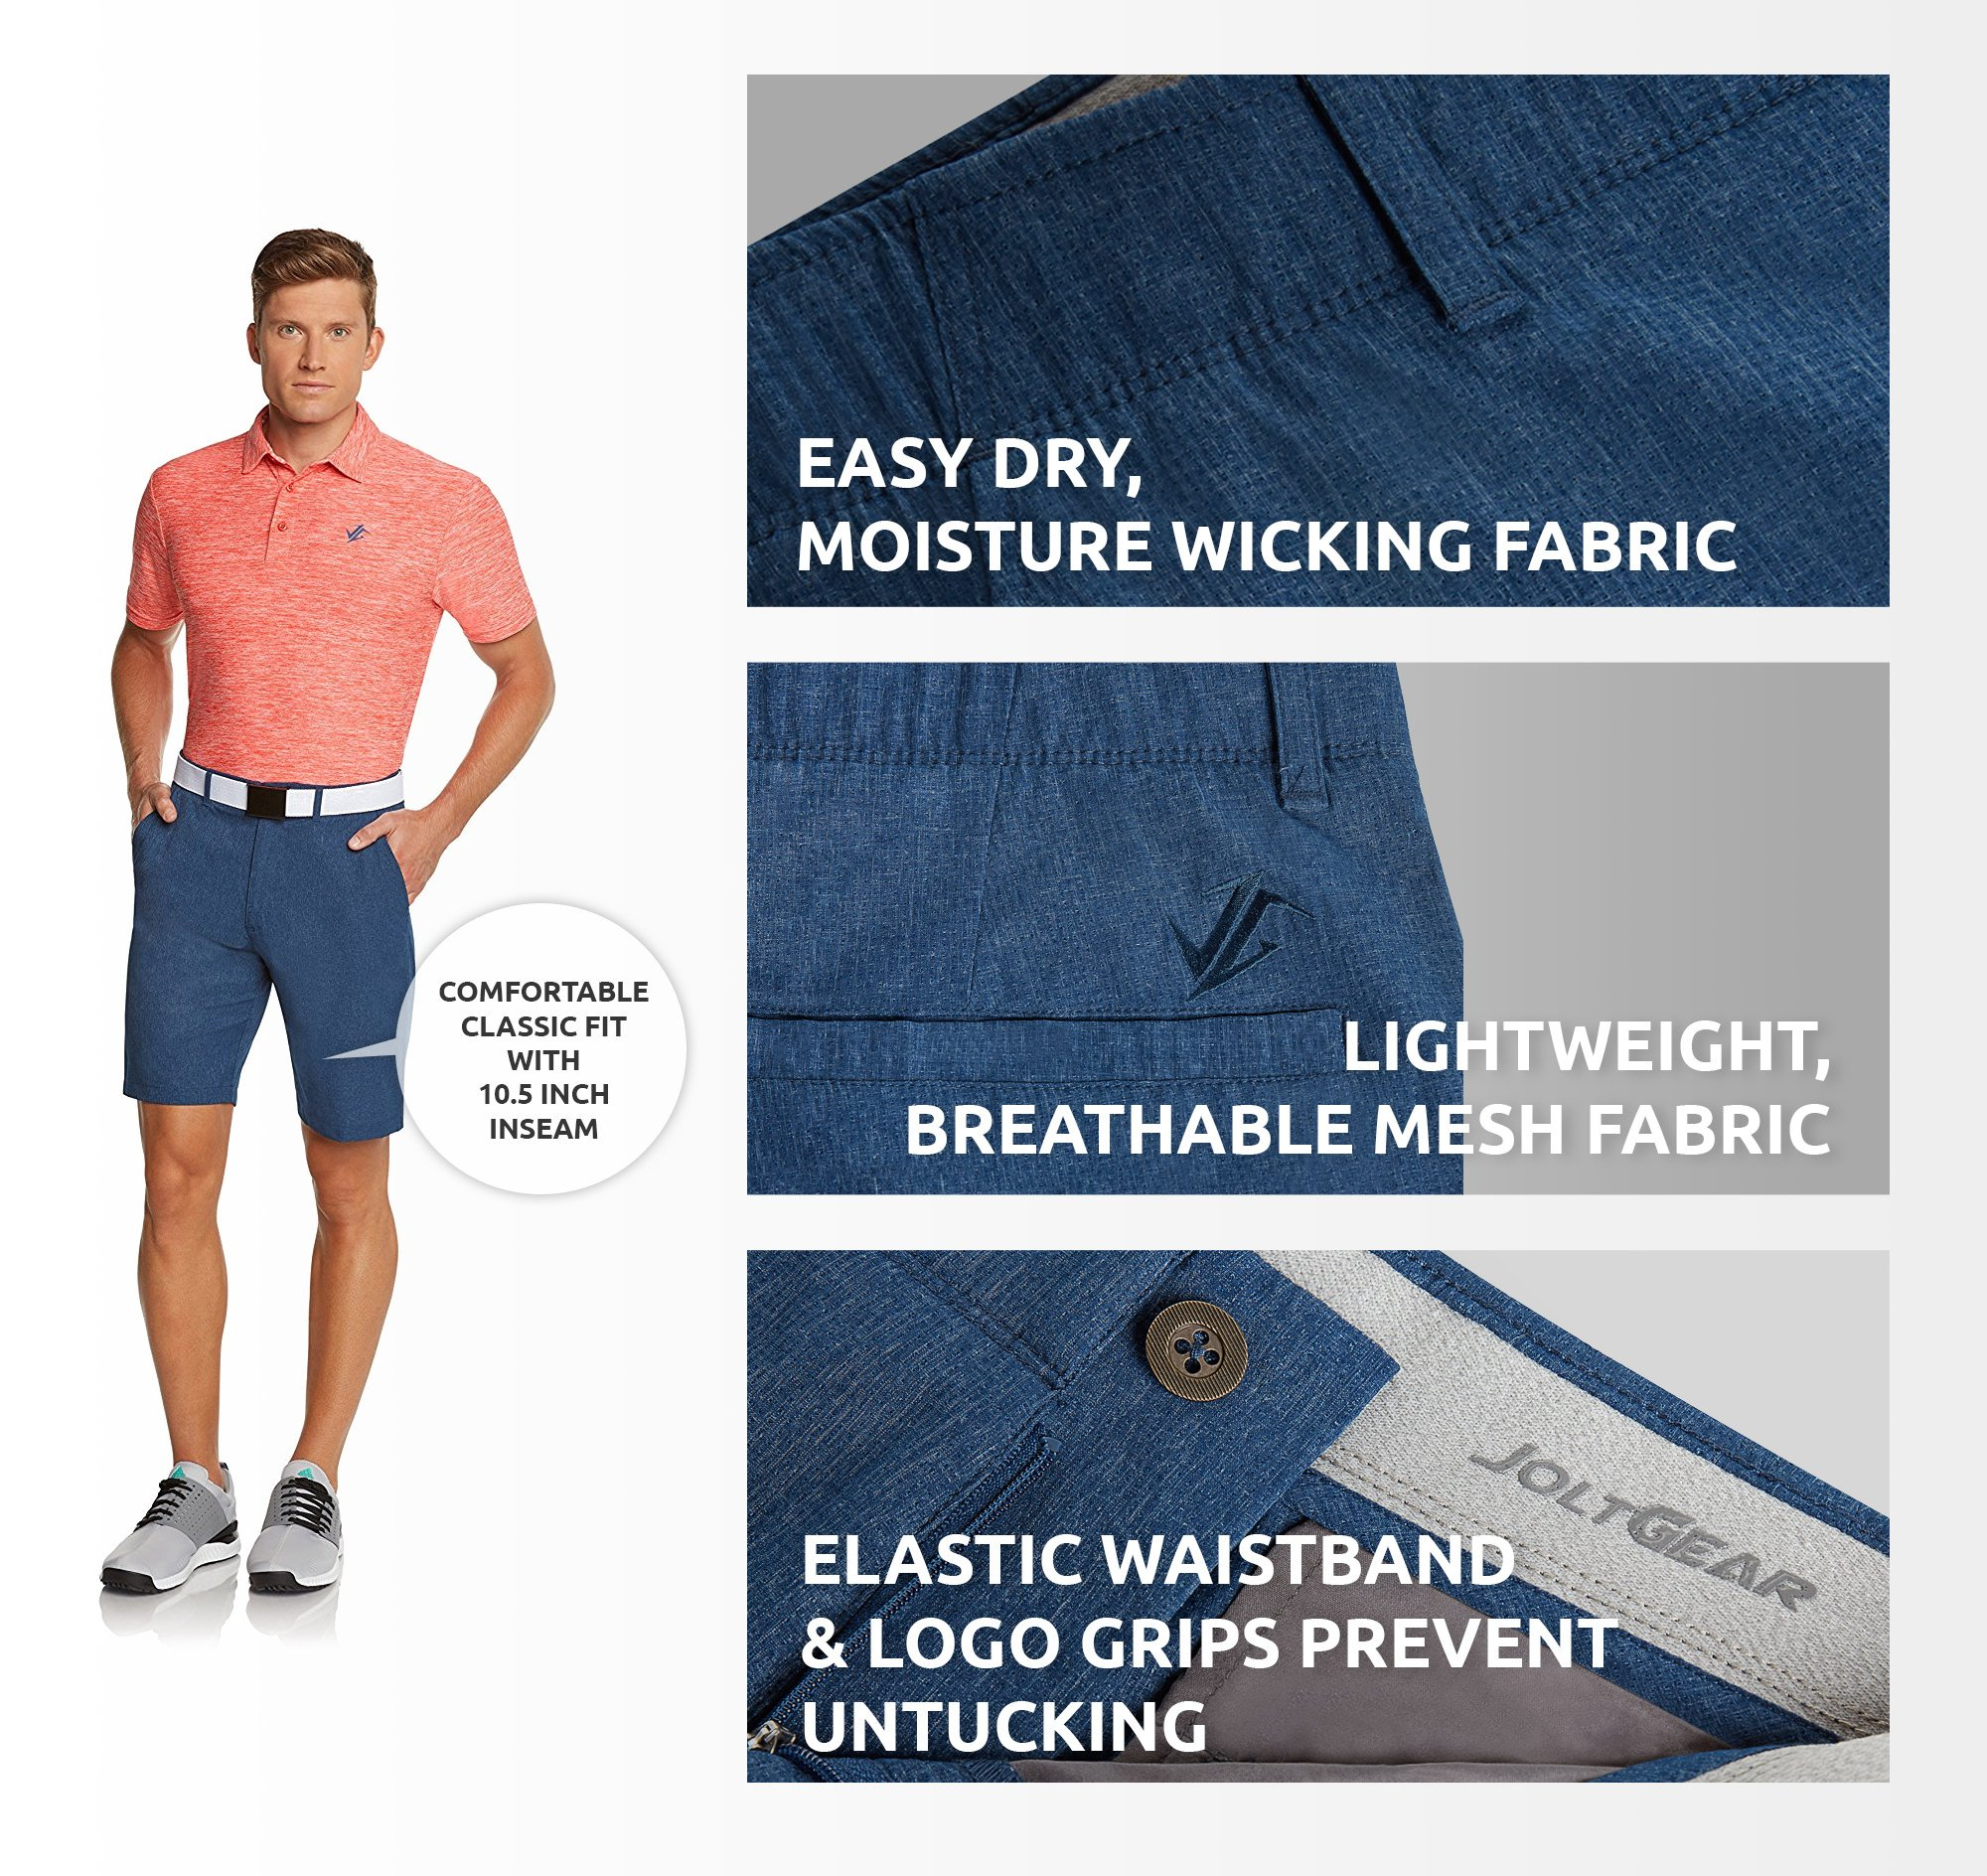 Jolt Gear Dry Fit Golf Shorts for Men – Casual Mens Shorts Moisture Wicking - Men's Chino Shorts with Elastic Waistband by Jolt Gear (Image #8)